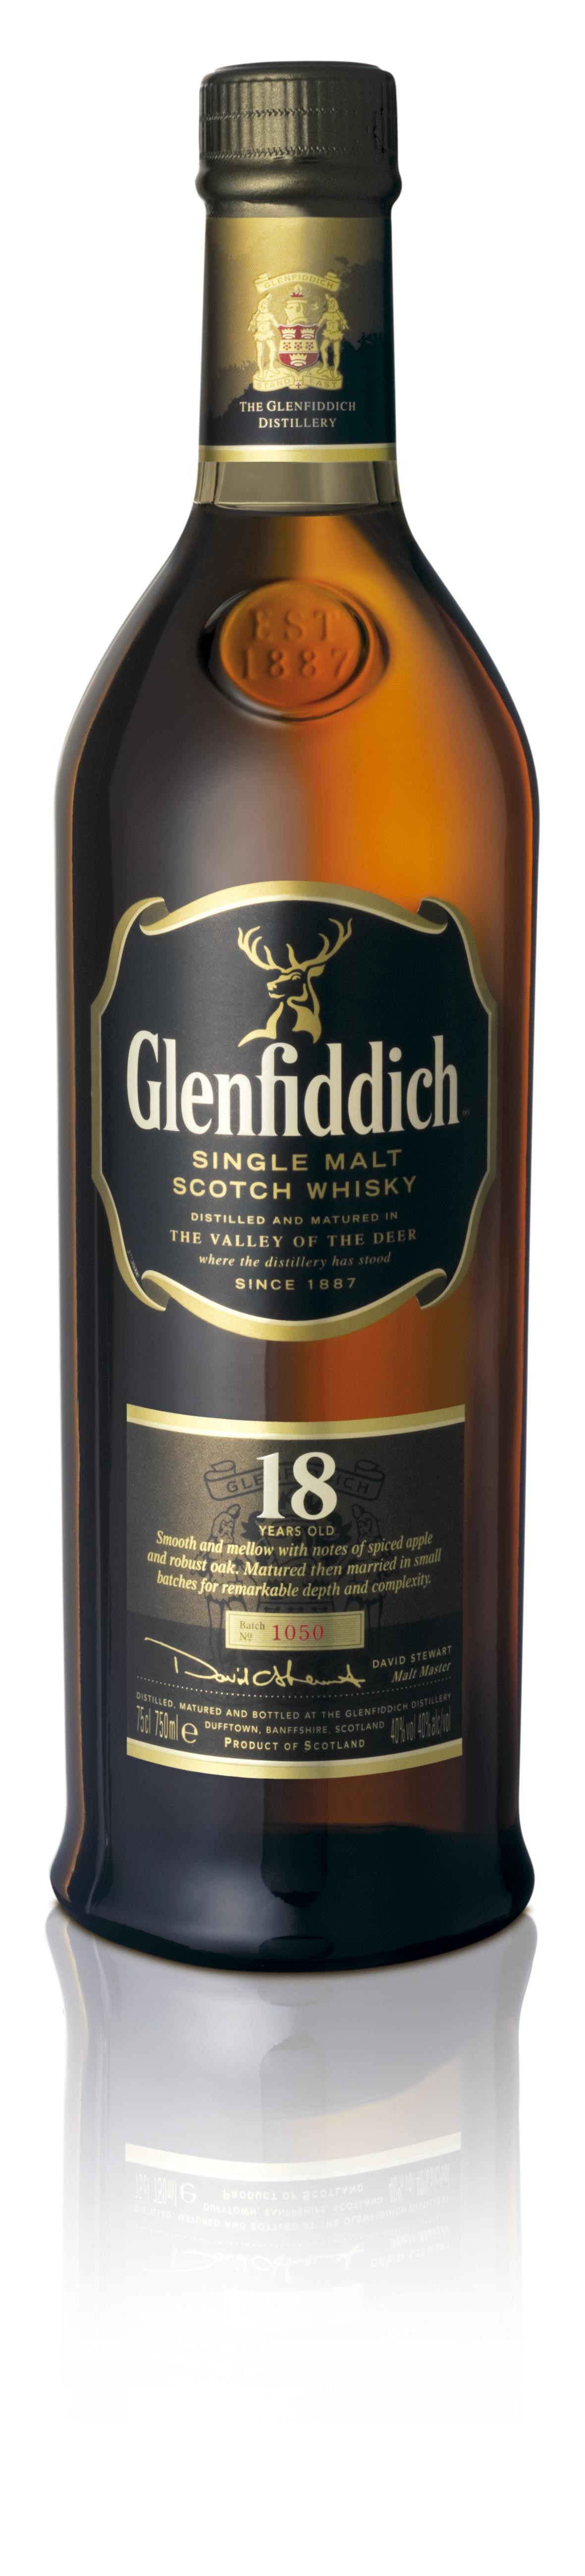 Glenfiddich 18year 70cl 40% malt whisky speyside